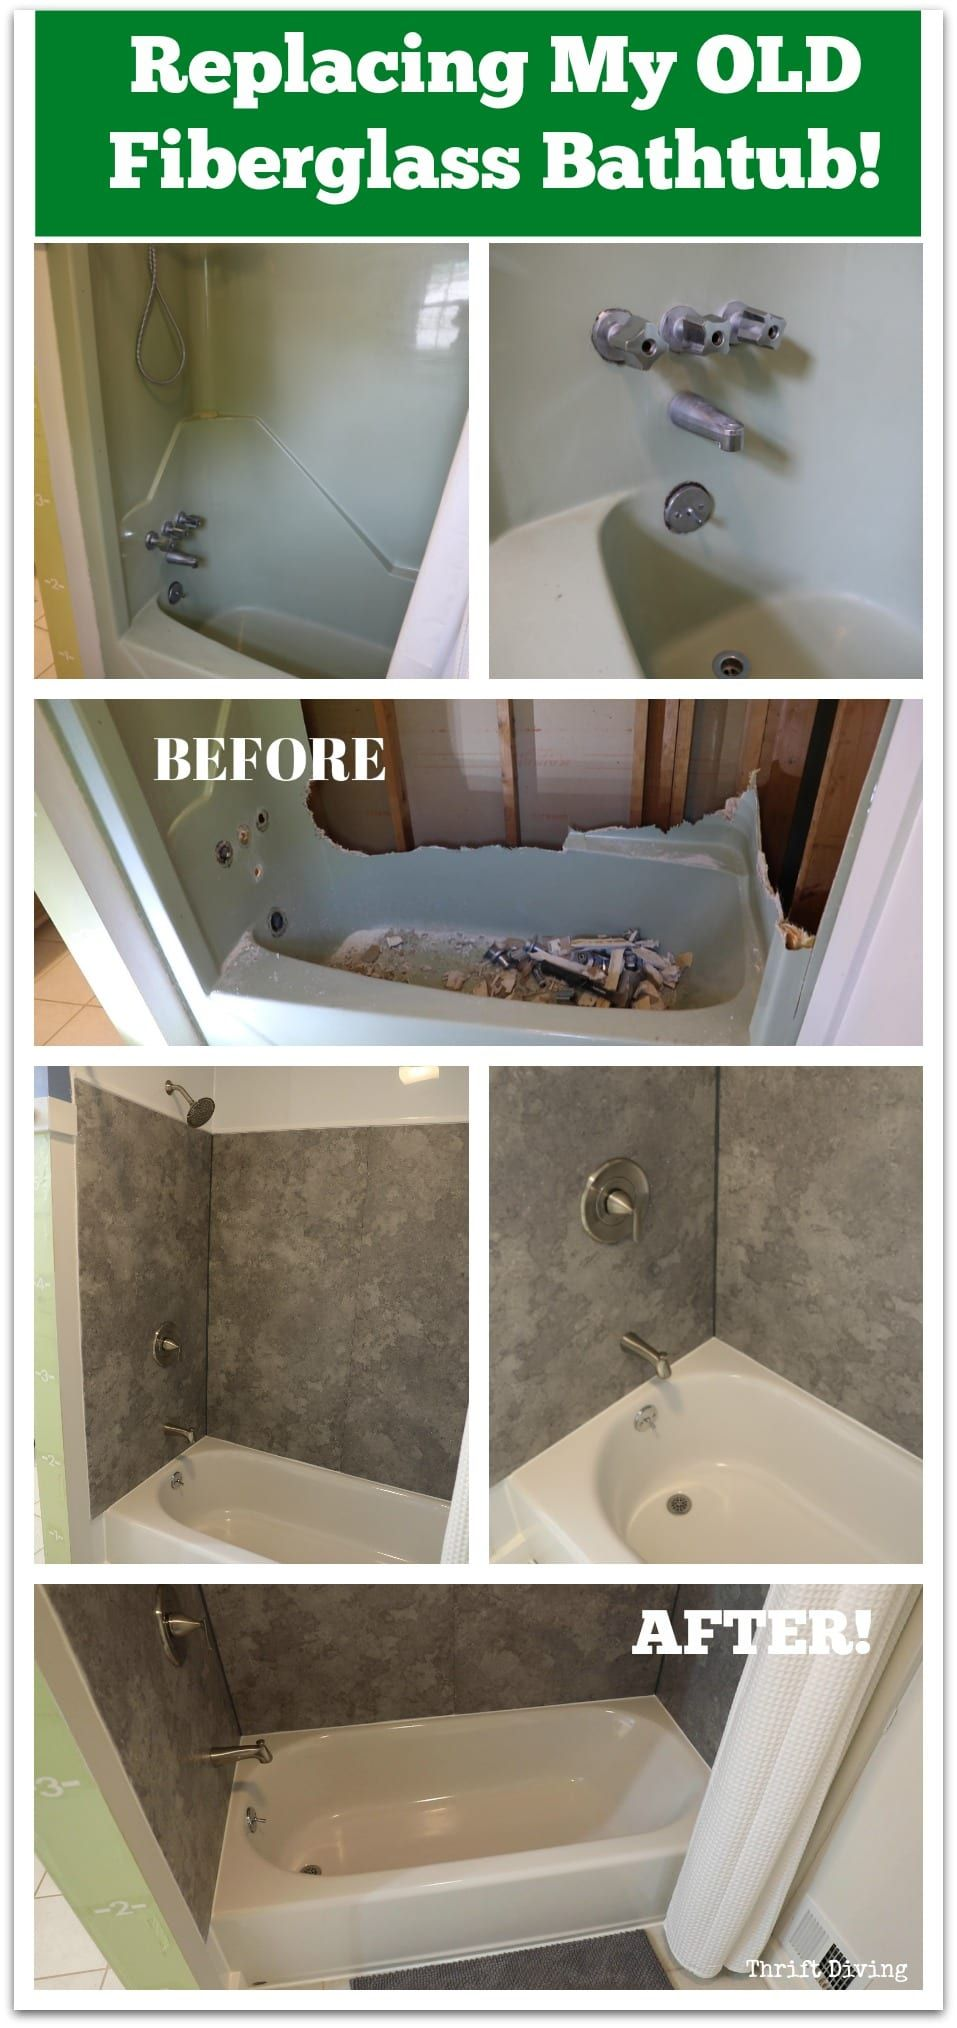 Before After Replacing My Fiberglass Bathtub With Images Bathtub Wall Surround Bathtub Walls Bathtub Surround